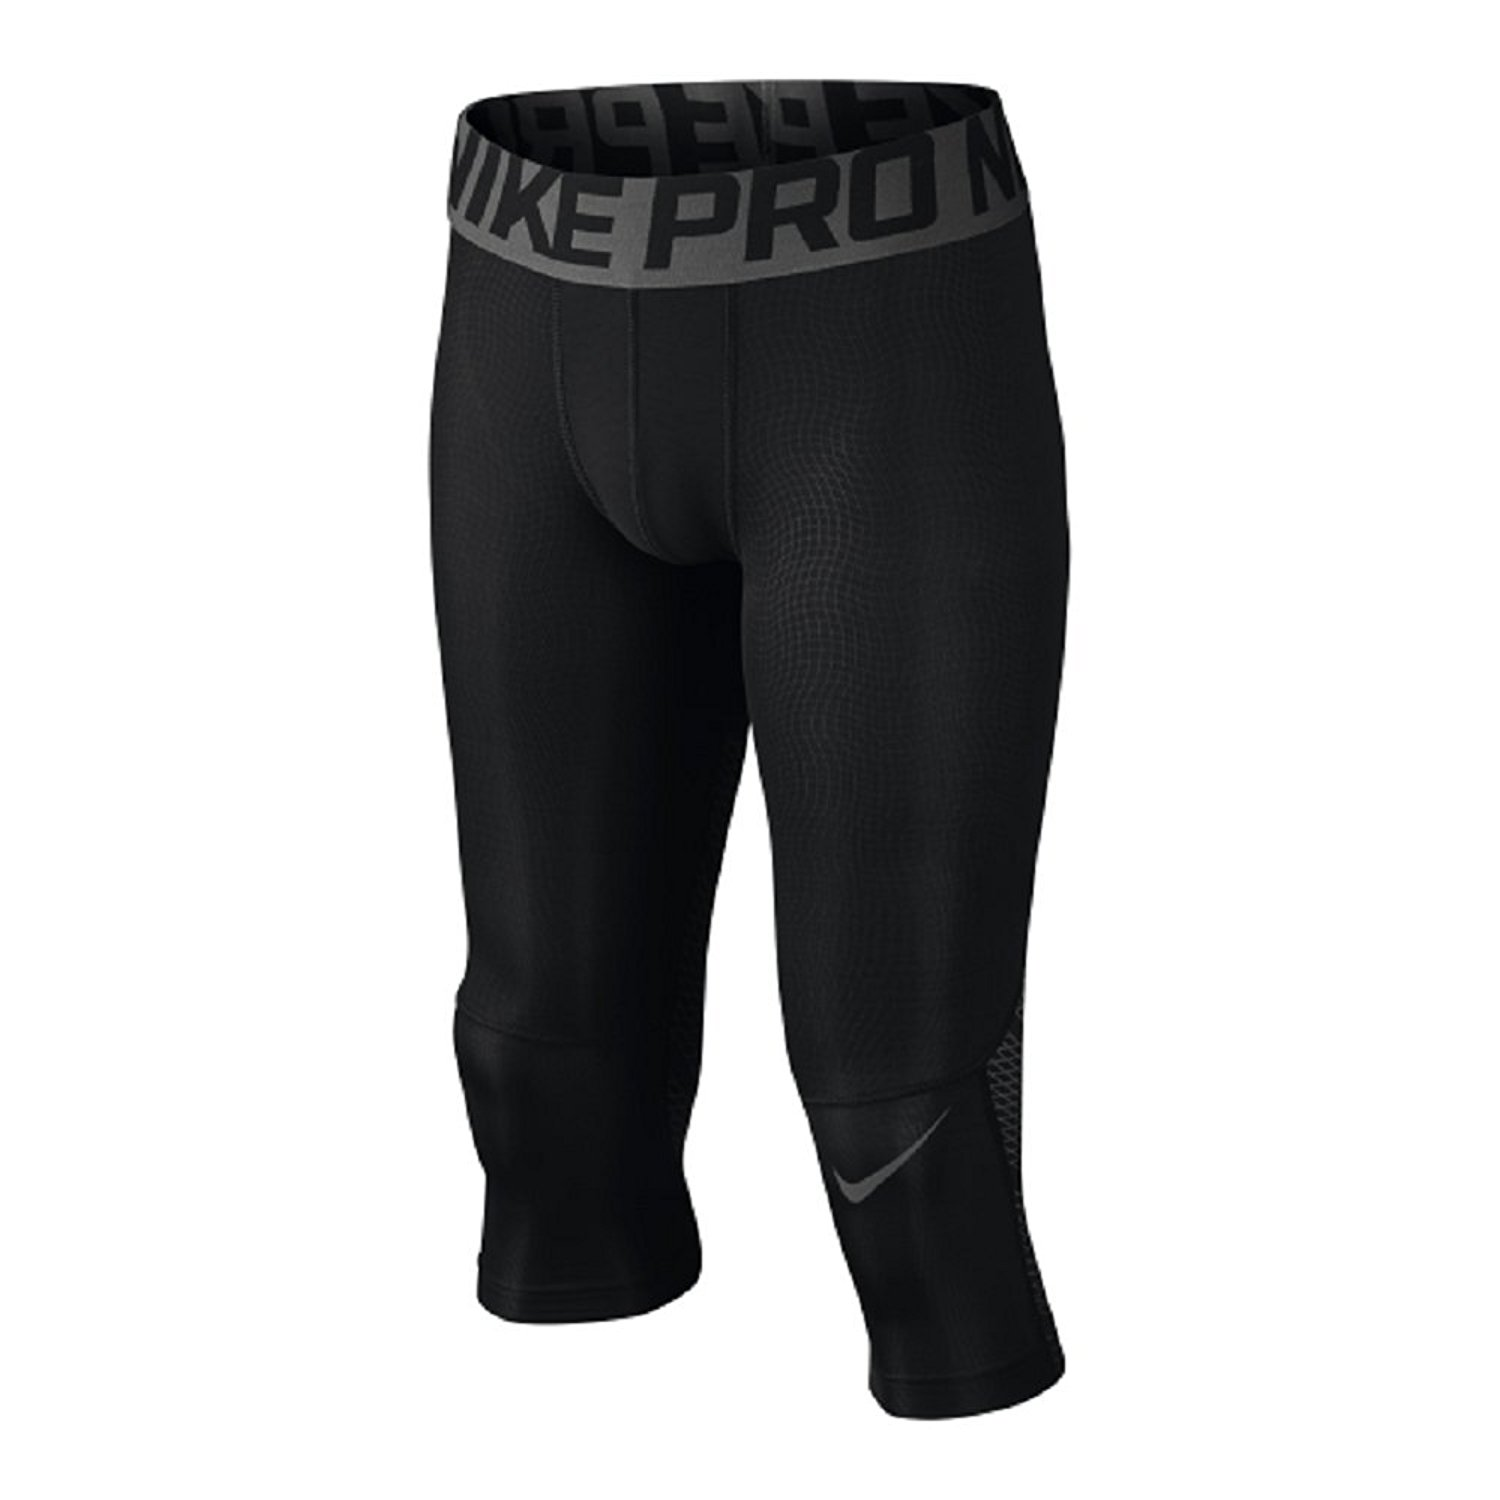 ba0dff488ed73 Get Quotations · Nike Boy's Pro Hypercool Three Quarter Compression Tights